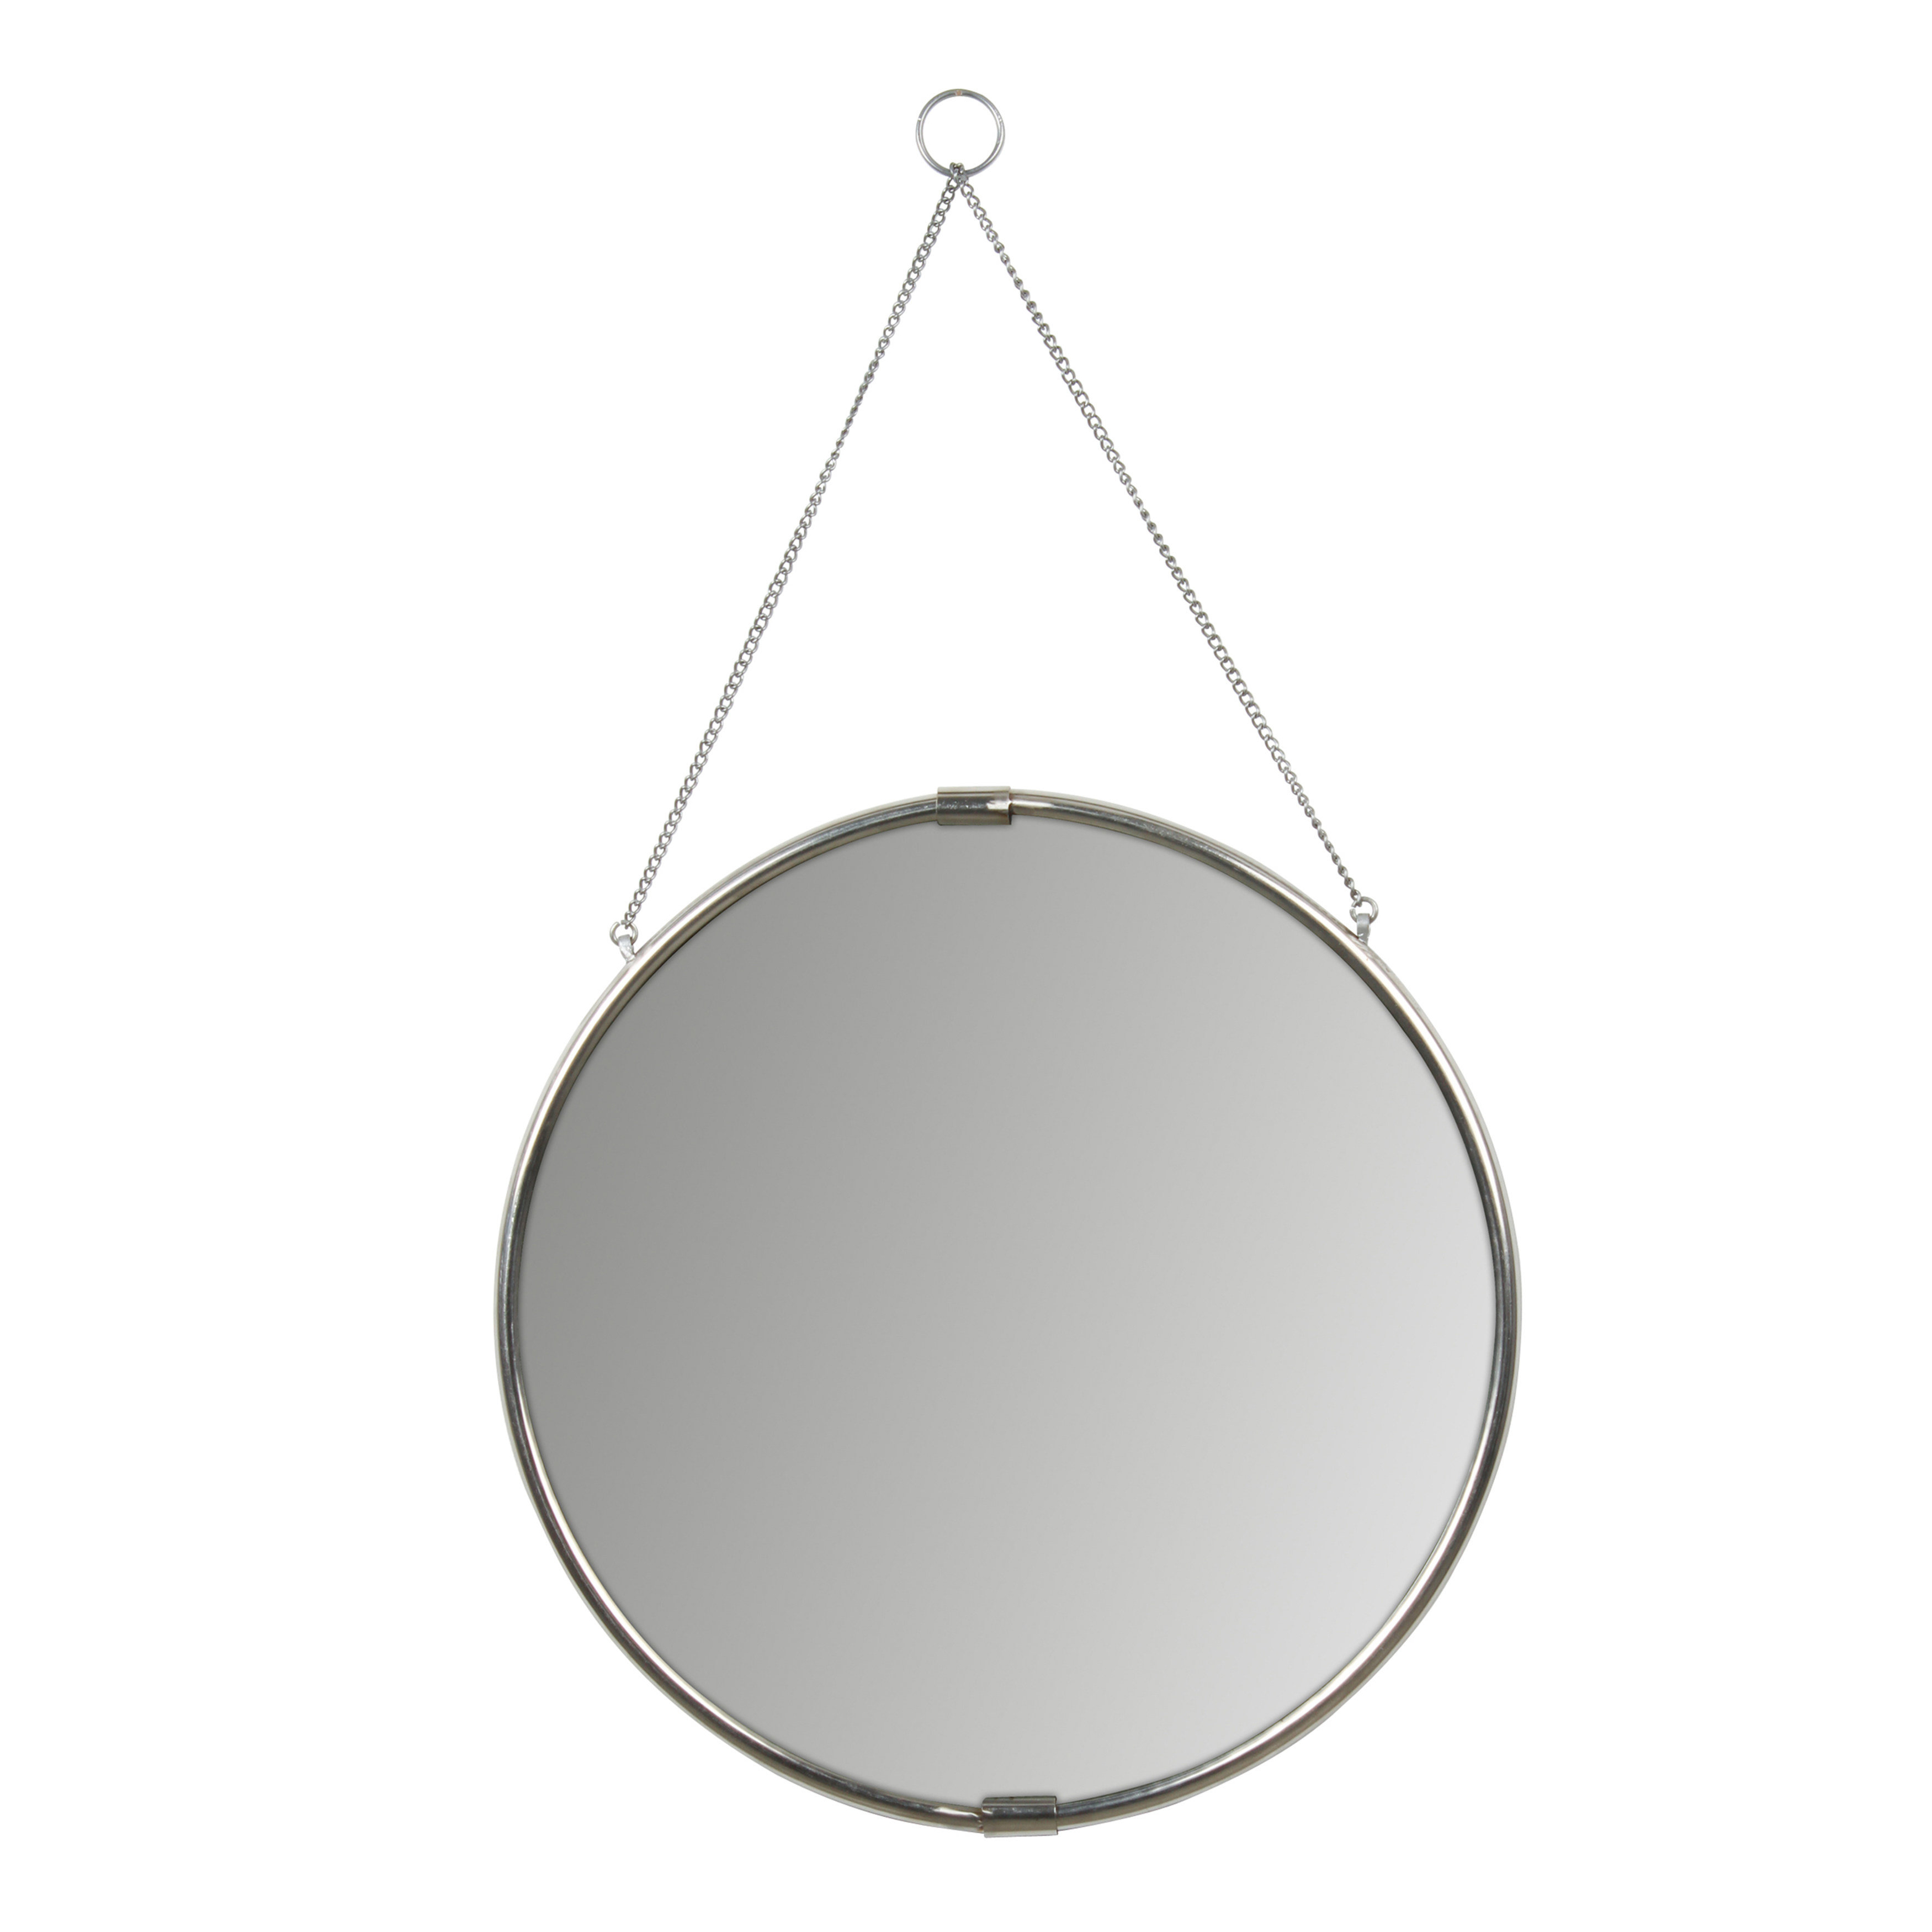 Contemporary Wall Mirrors Intended For Most Up To Date Brea Decorative Round Hanging Modern & Contemporary Wall Mirror (View 15 of 20)